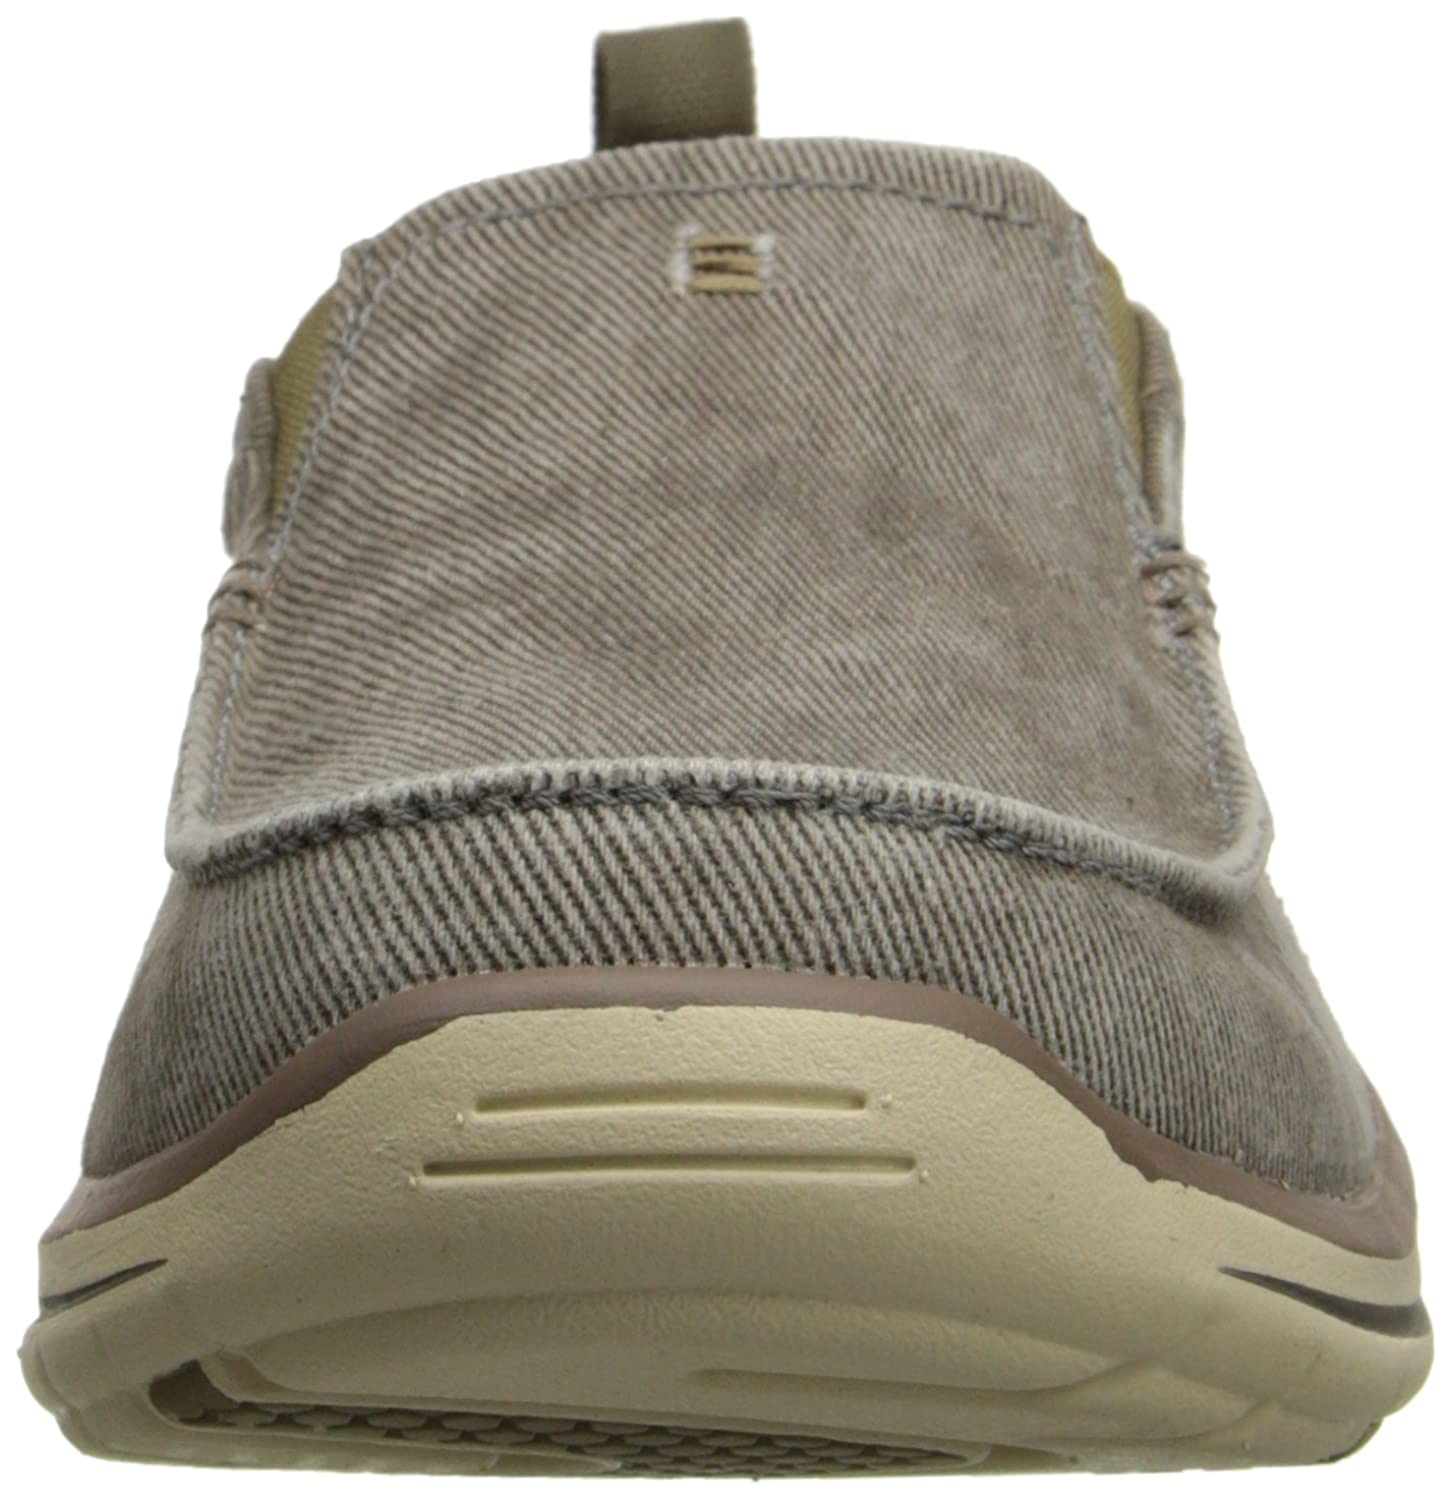 Skechers Avslappet Fit Minne Skum Mens Amazon UFF10